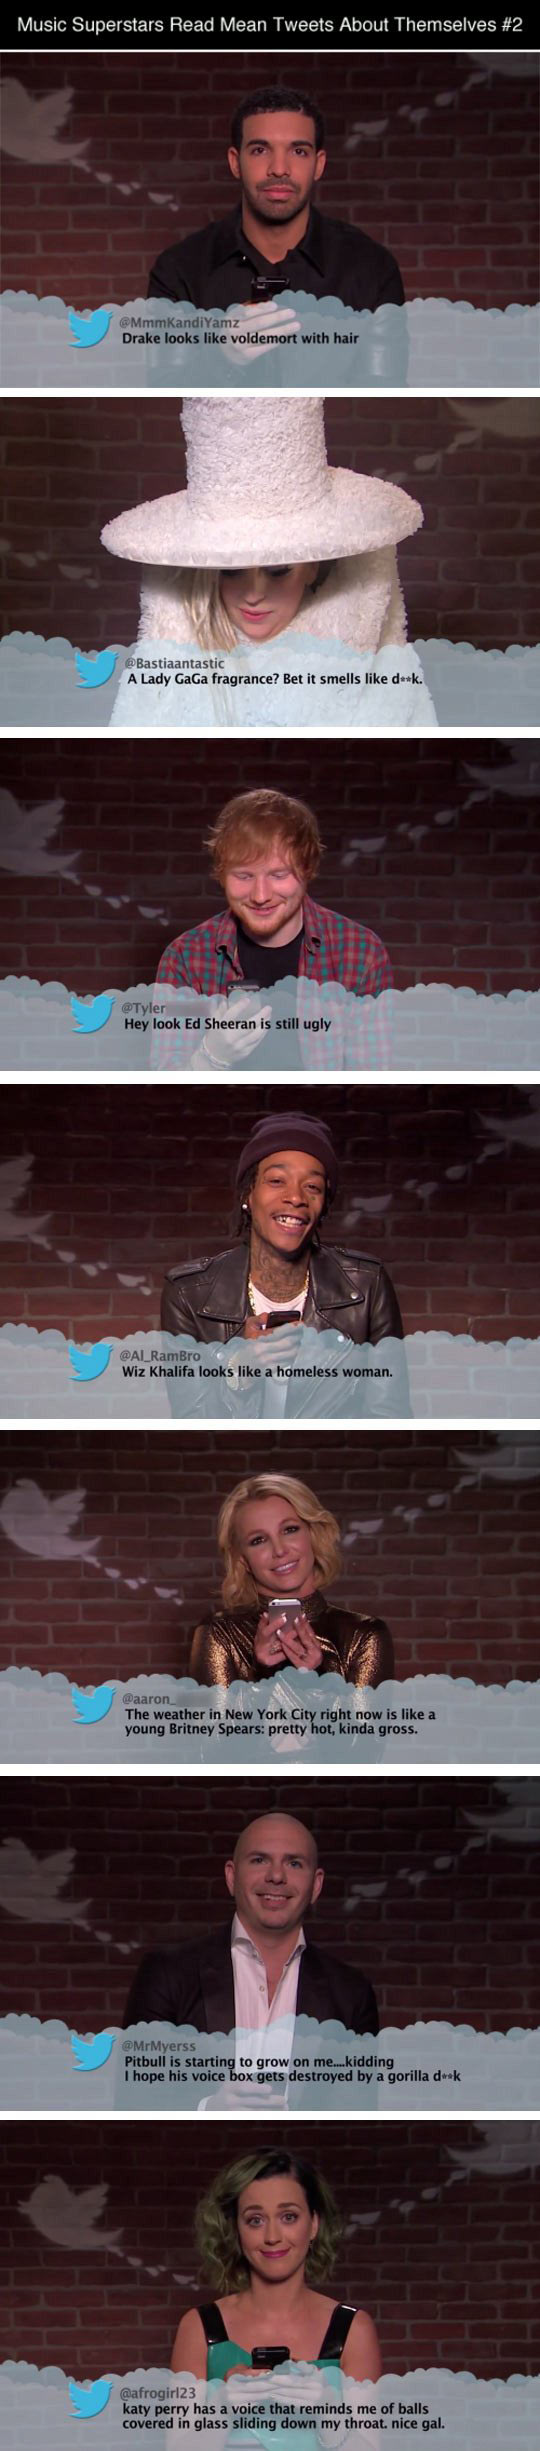 Music Superstars Read Mean Tweets